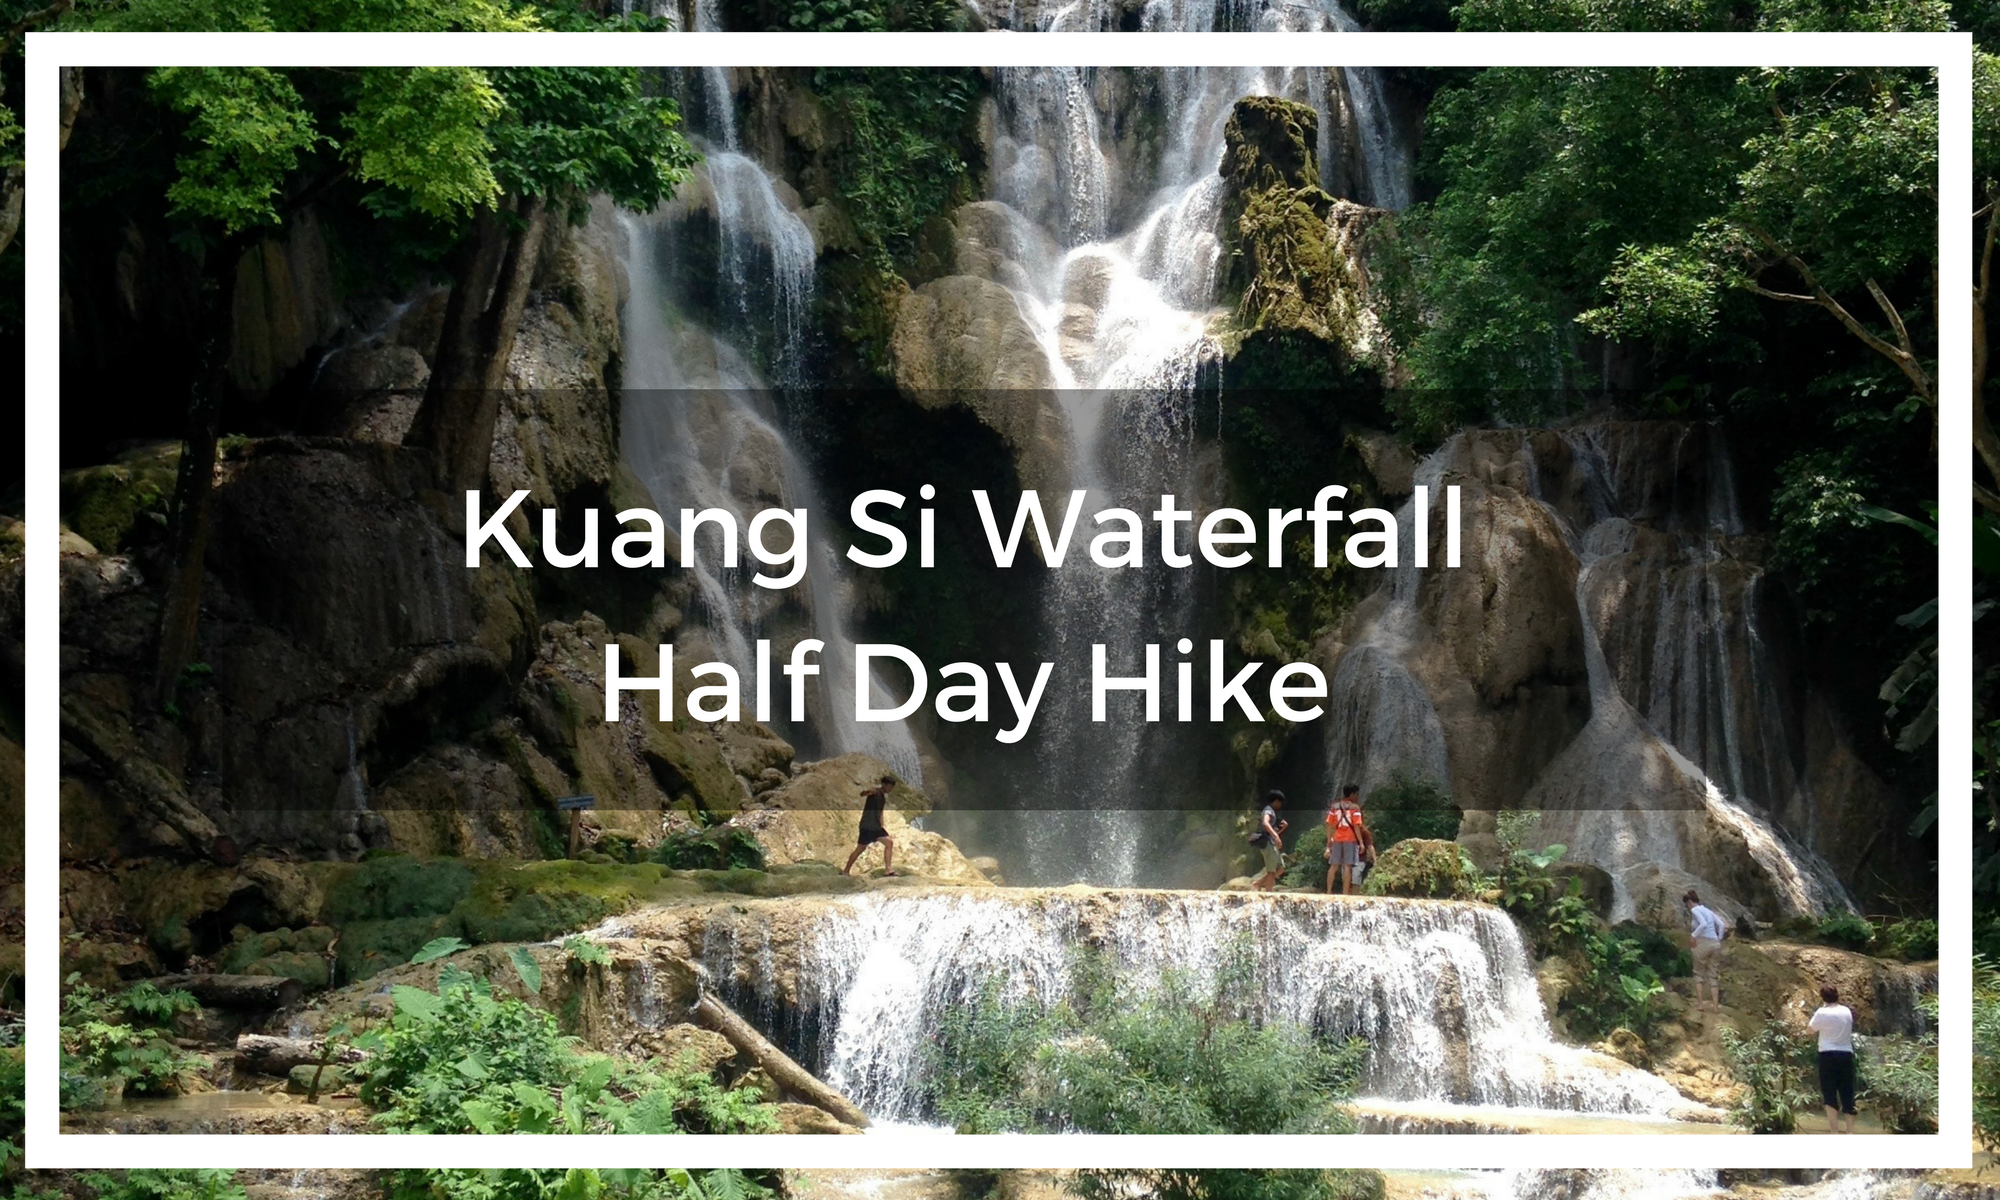 Title image of waterfalls with overlay title text